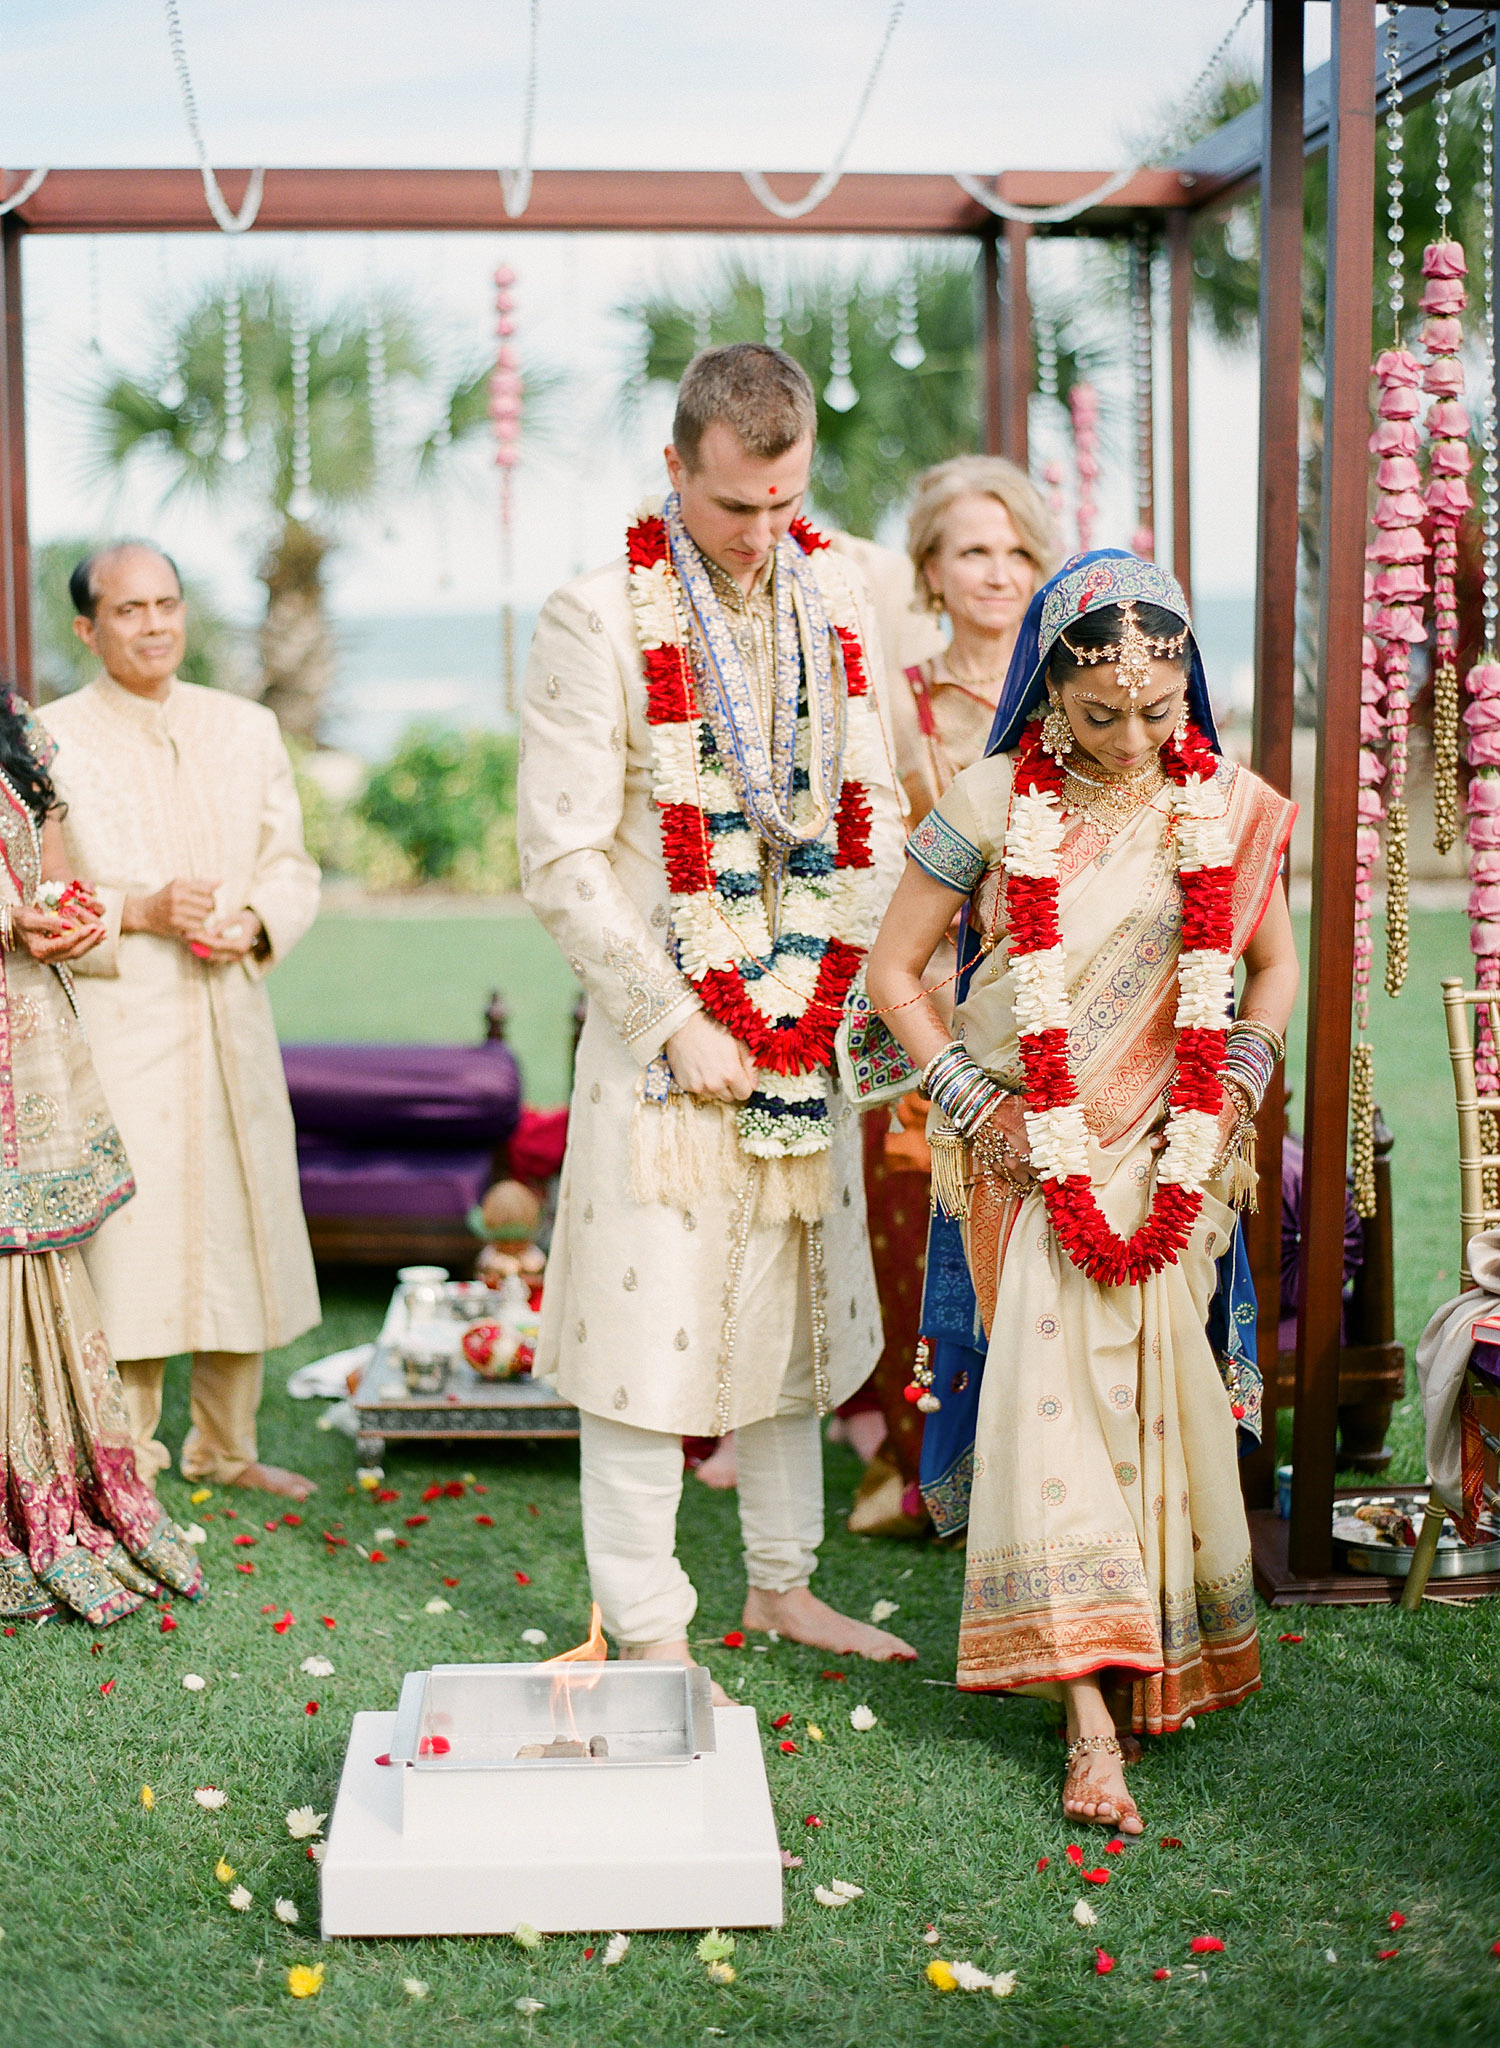 Indian Wedding in Florida photographed by Destination Wedding Photographer, LExia Frank - a top indian wedding photographer - who shoots film for luxury indian weddings preferring the soft skin tones and vibrant colors for indian weddings in india and worldwide